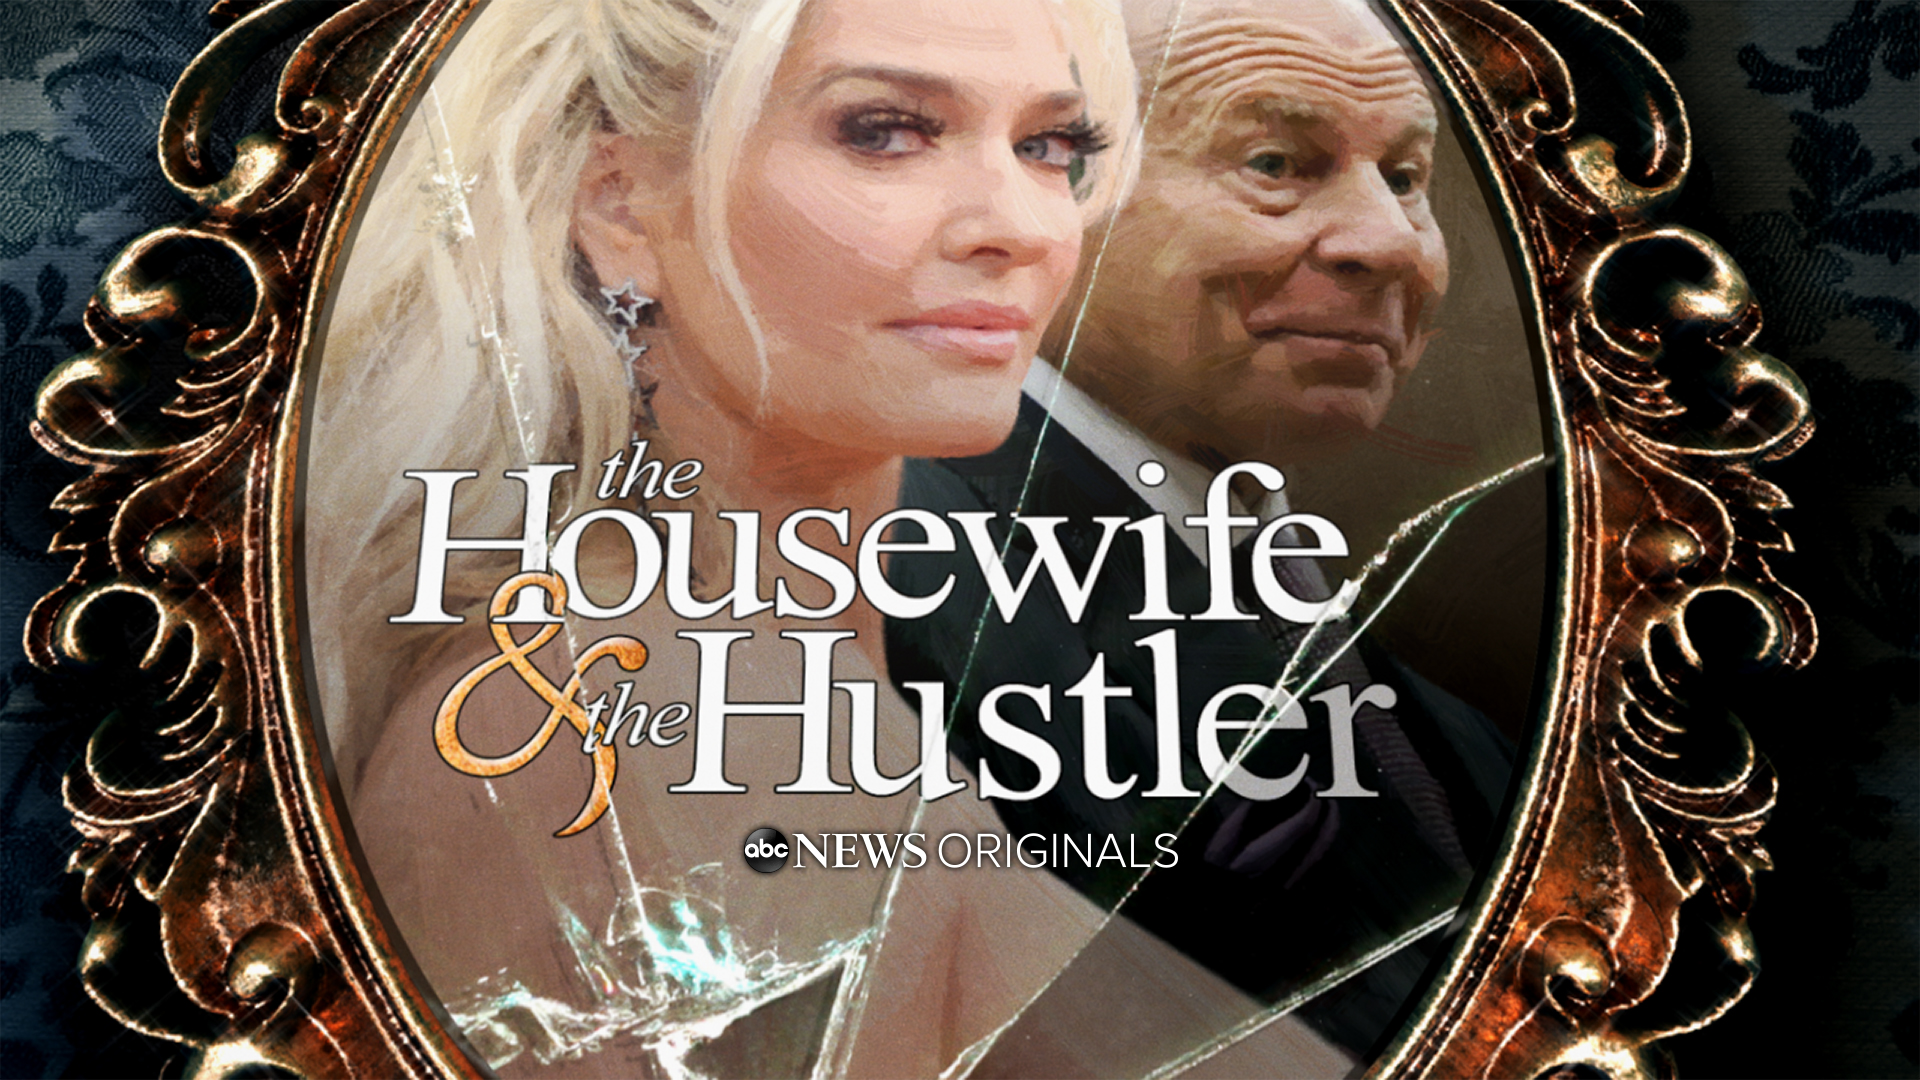 The Housewife & The Hustler